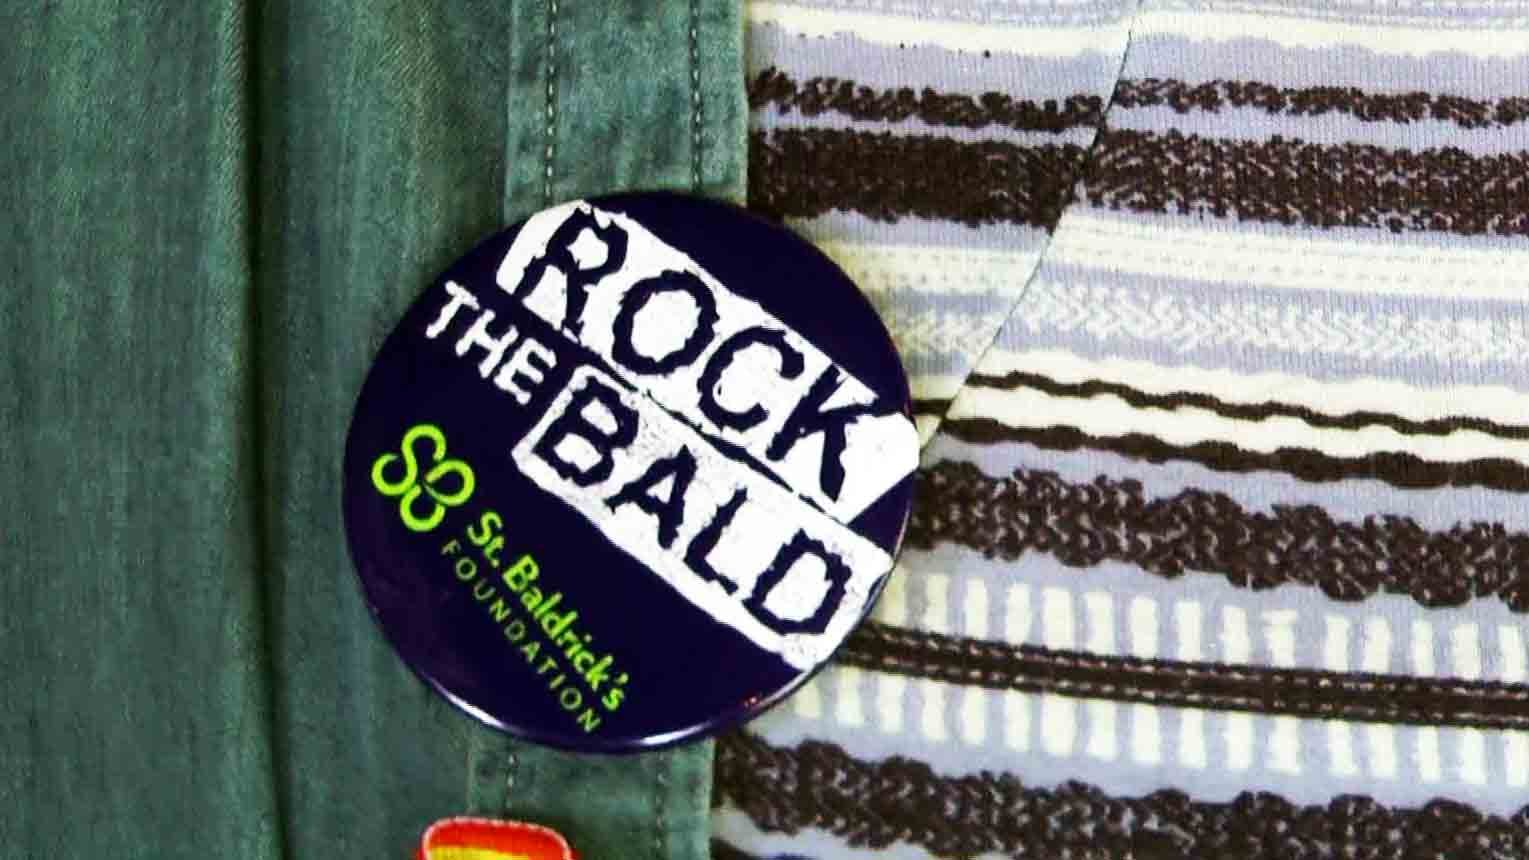 Random Row Brewing Company Hosts 2nd Annual St. Baldrick's Event